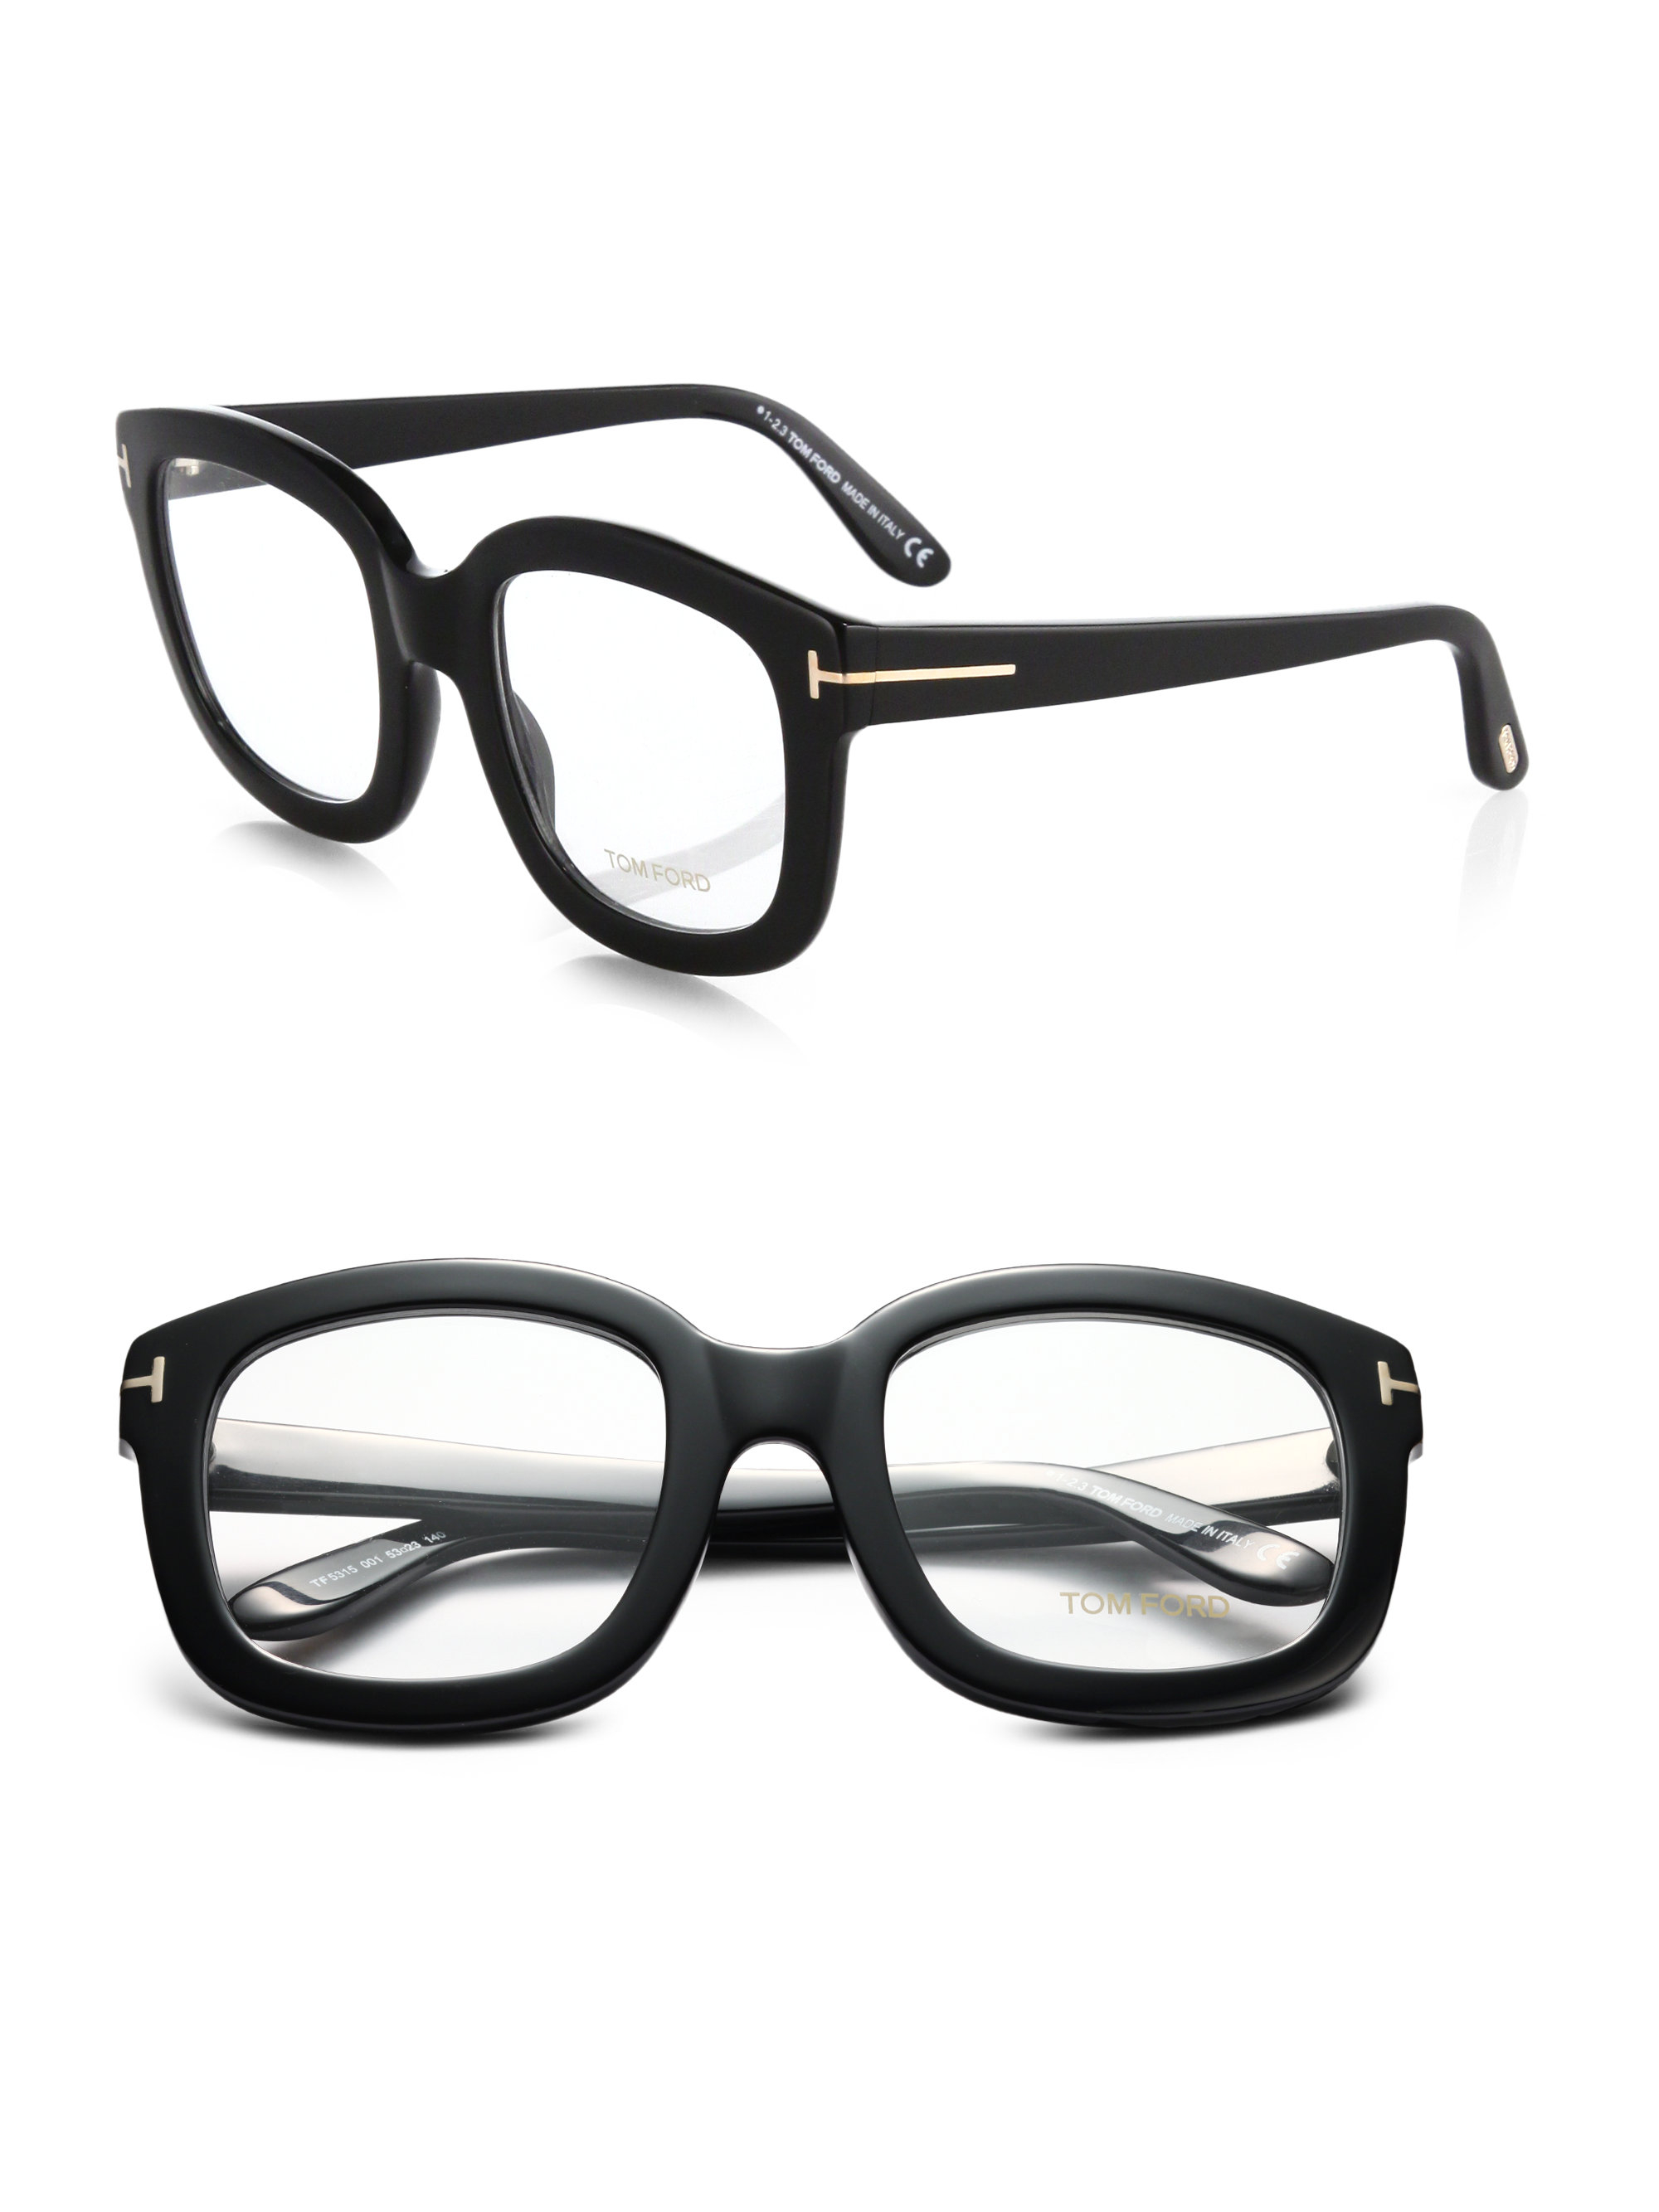 af669d59a8 Tom Ford Oversized Acetate Eye Glasses in Black - Lyst